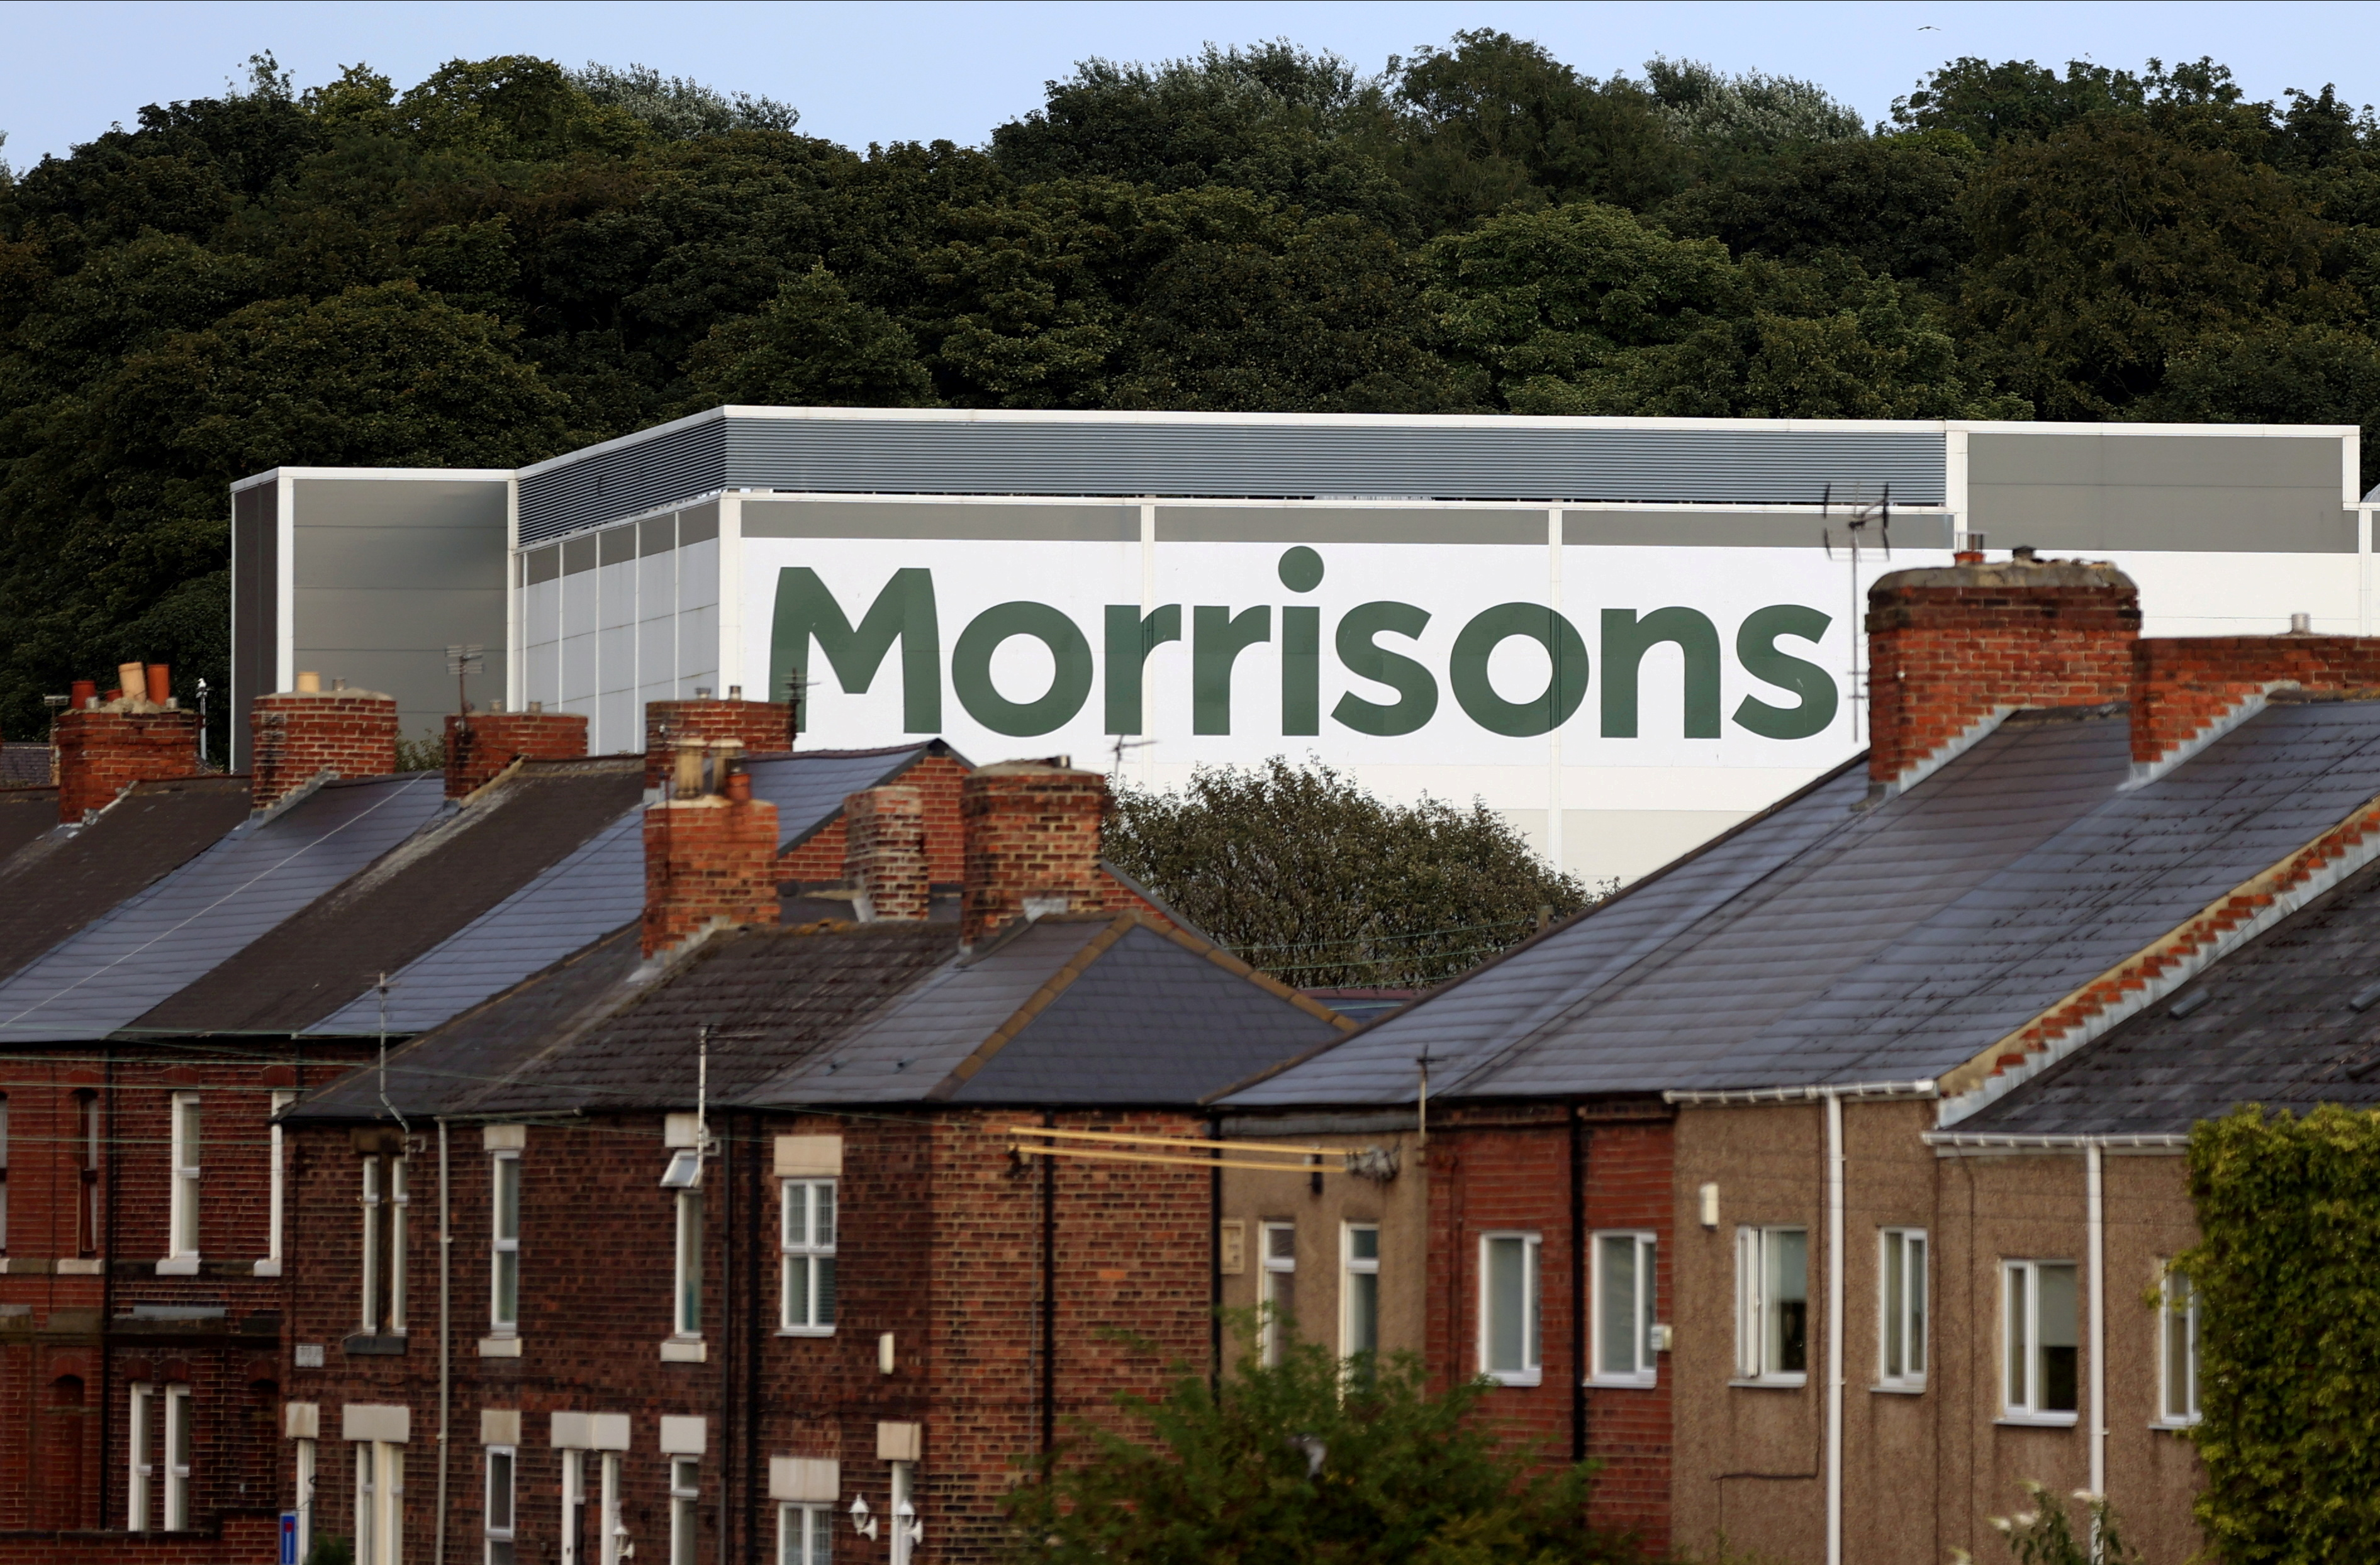 A view of a Morrisons supermarket in Birtley, Britain, August 16 2021. REUTERS/Lee Smith/File Photo